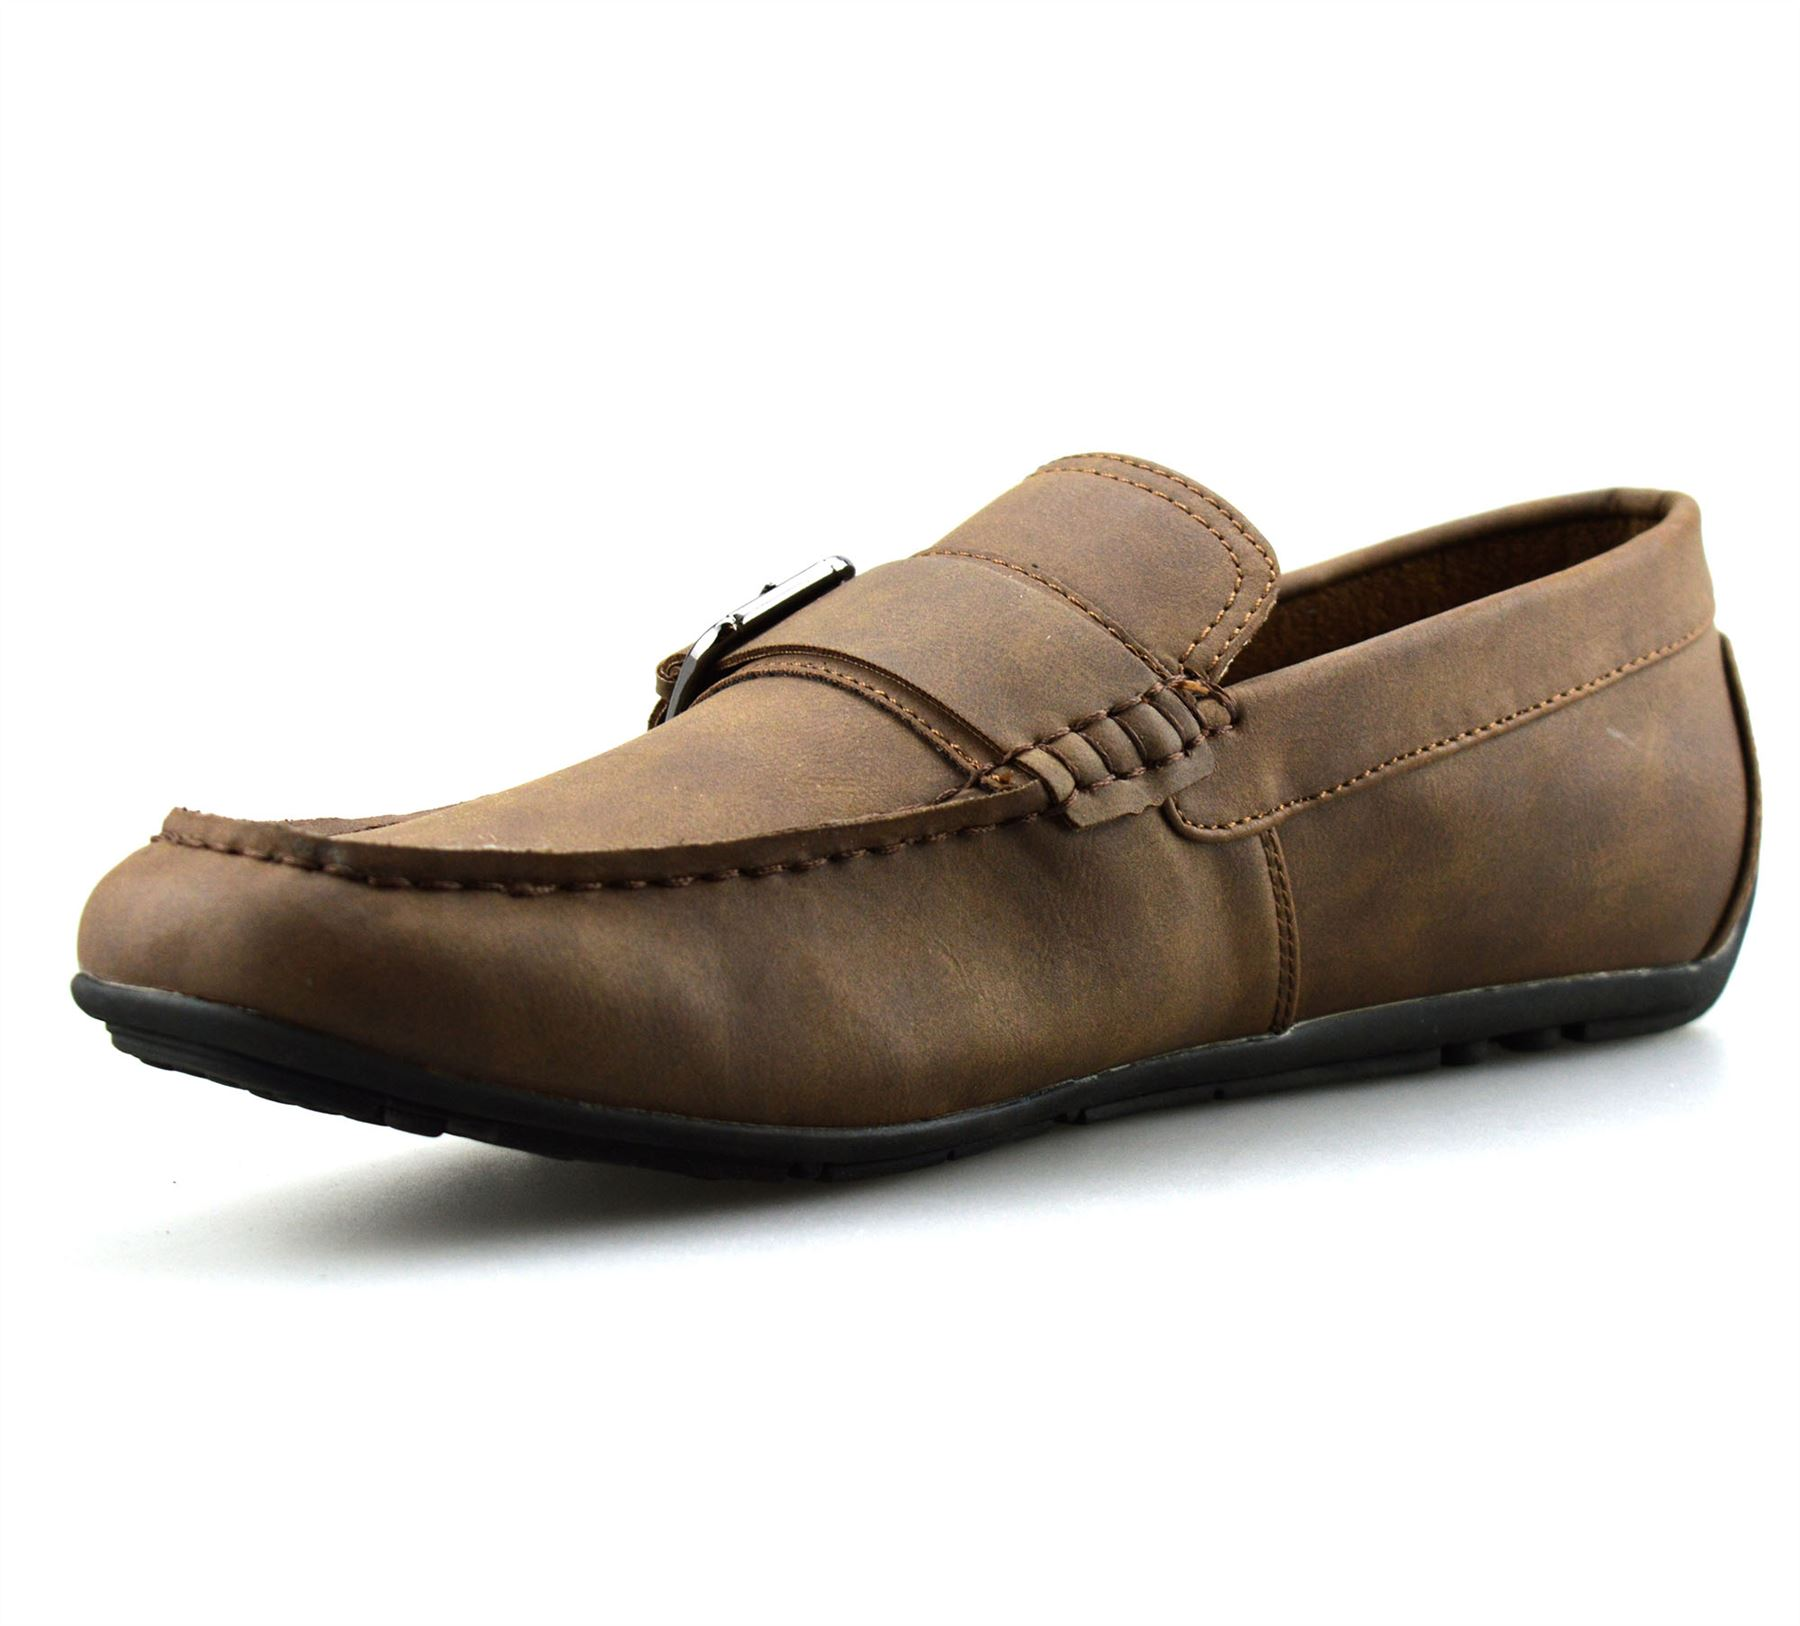 Mens-New-Slip-On-Boat-Deck-Casual-Mocassin-Designer-Loafers-Driving-Shoes-Size thumbnail 15